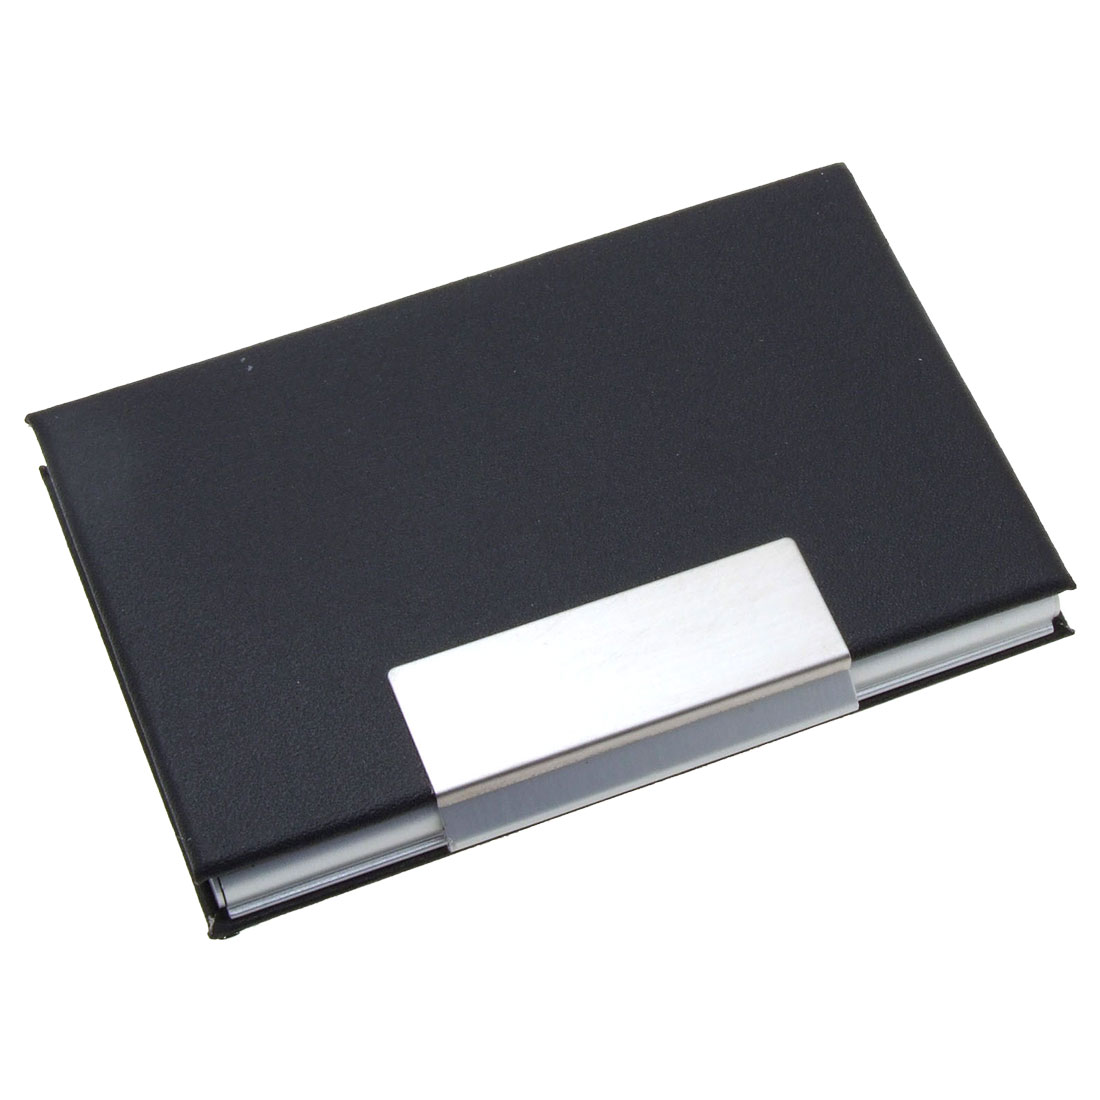 Magnet Closure Black Metal Business Cards ID Holder